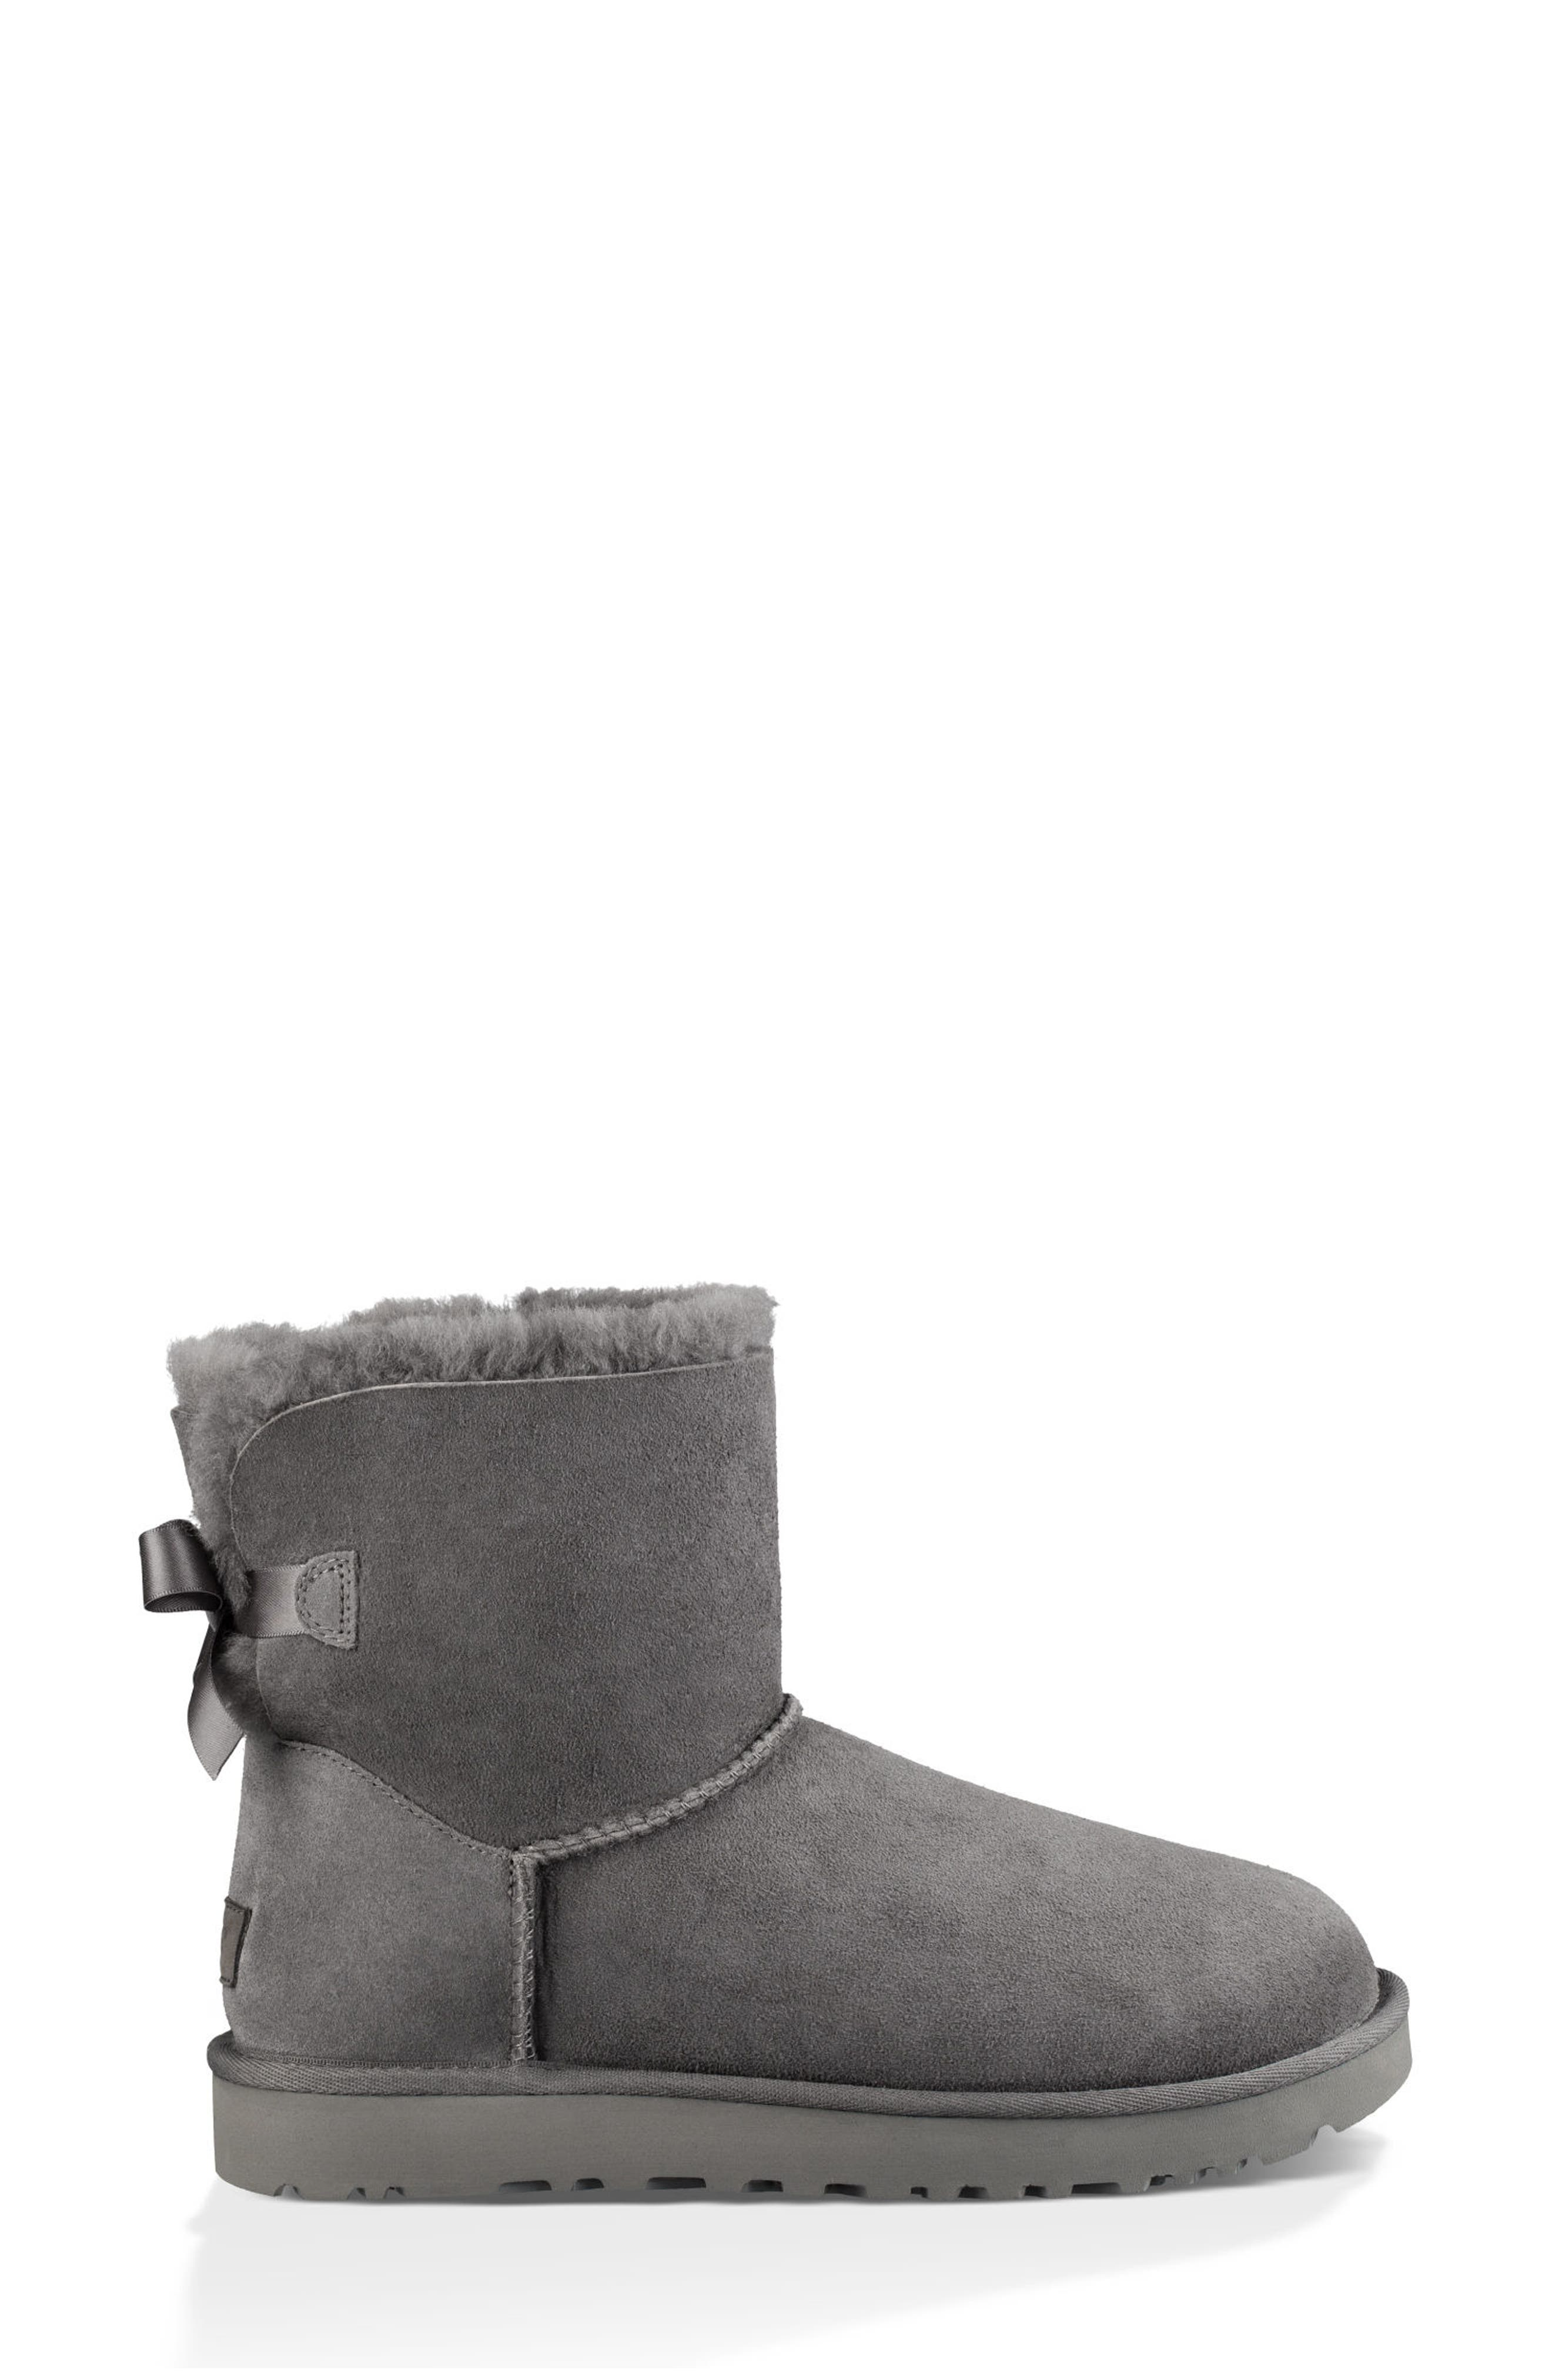 UGG<SUP>®</SUP>, Mini Bailey Bow II Genuine Shearling Bootie, Alternate thumbnail 3, color, GREY SUEDE